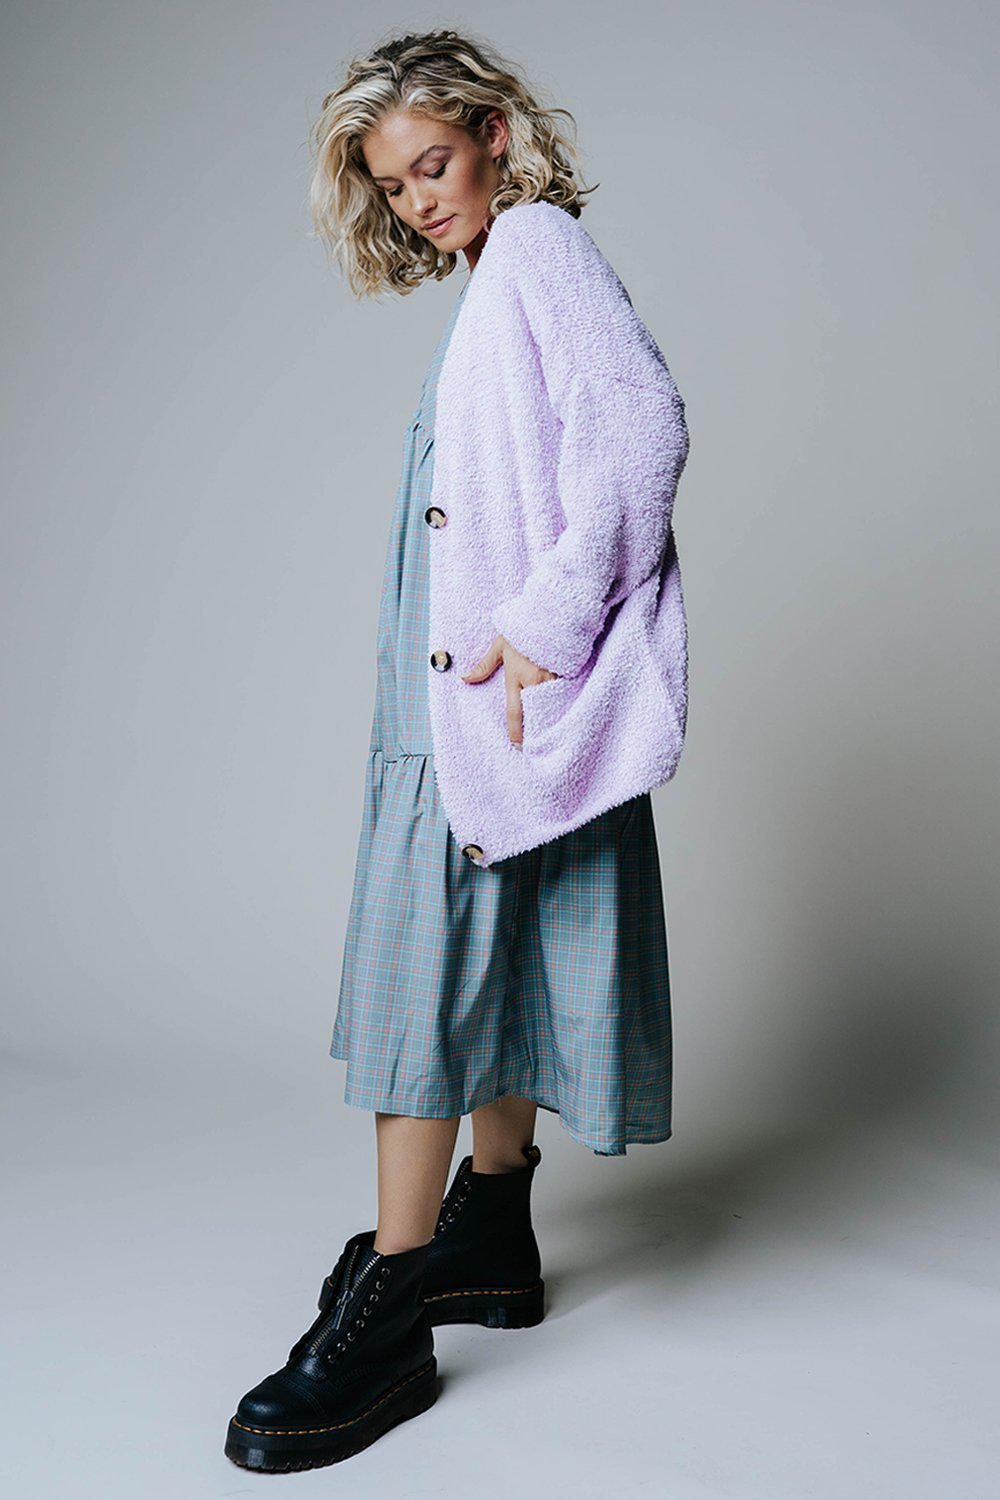 Amber Alley Sweater in Lavender-Top-hyfve-S-Clad & Cloth